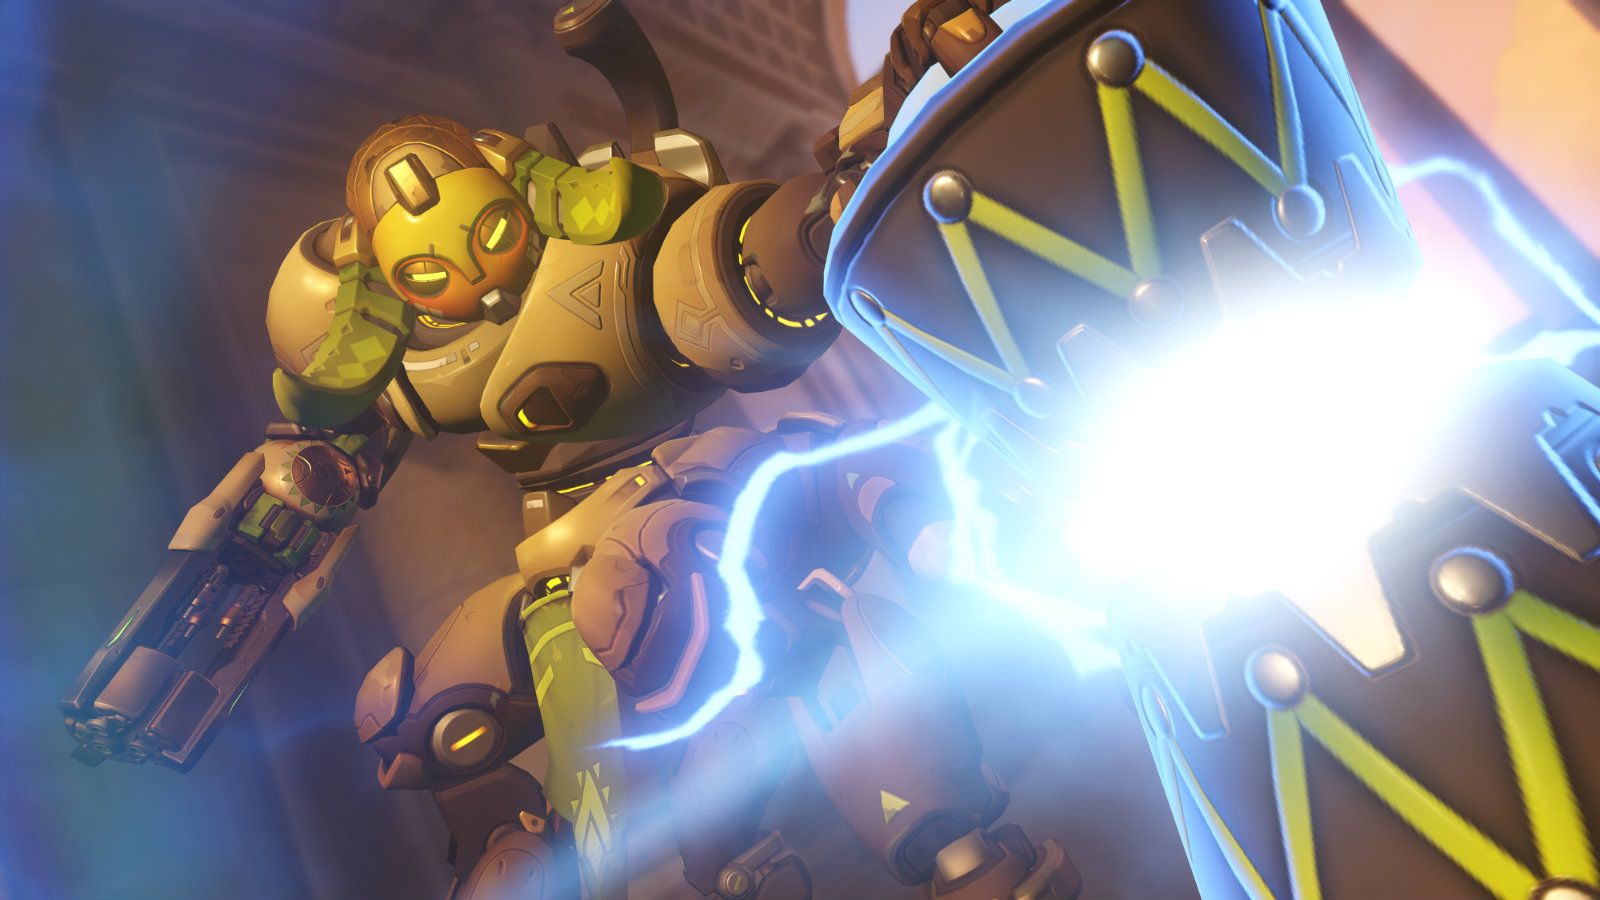 Orisa places down Super Charger in Overwatch